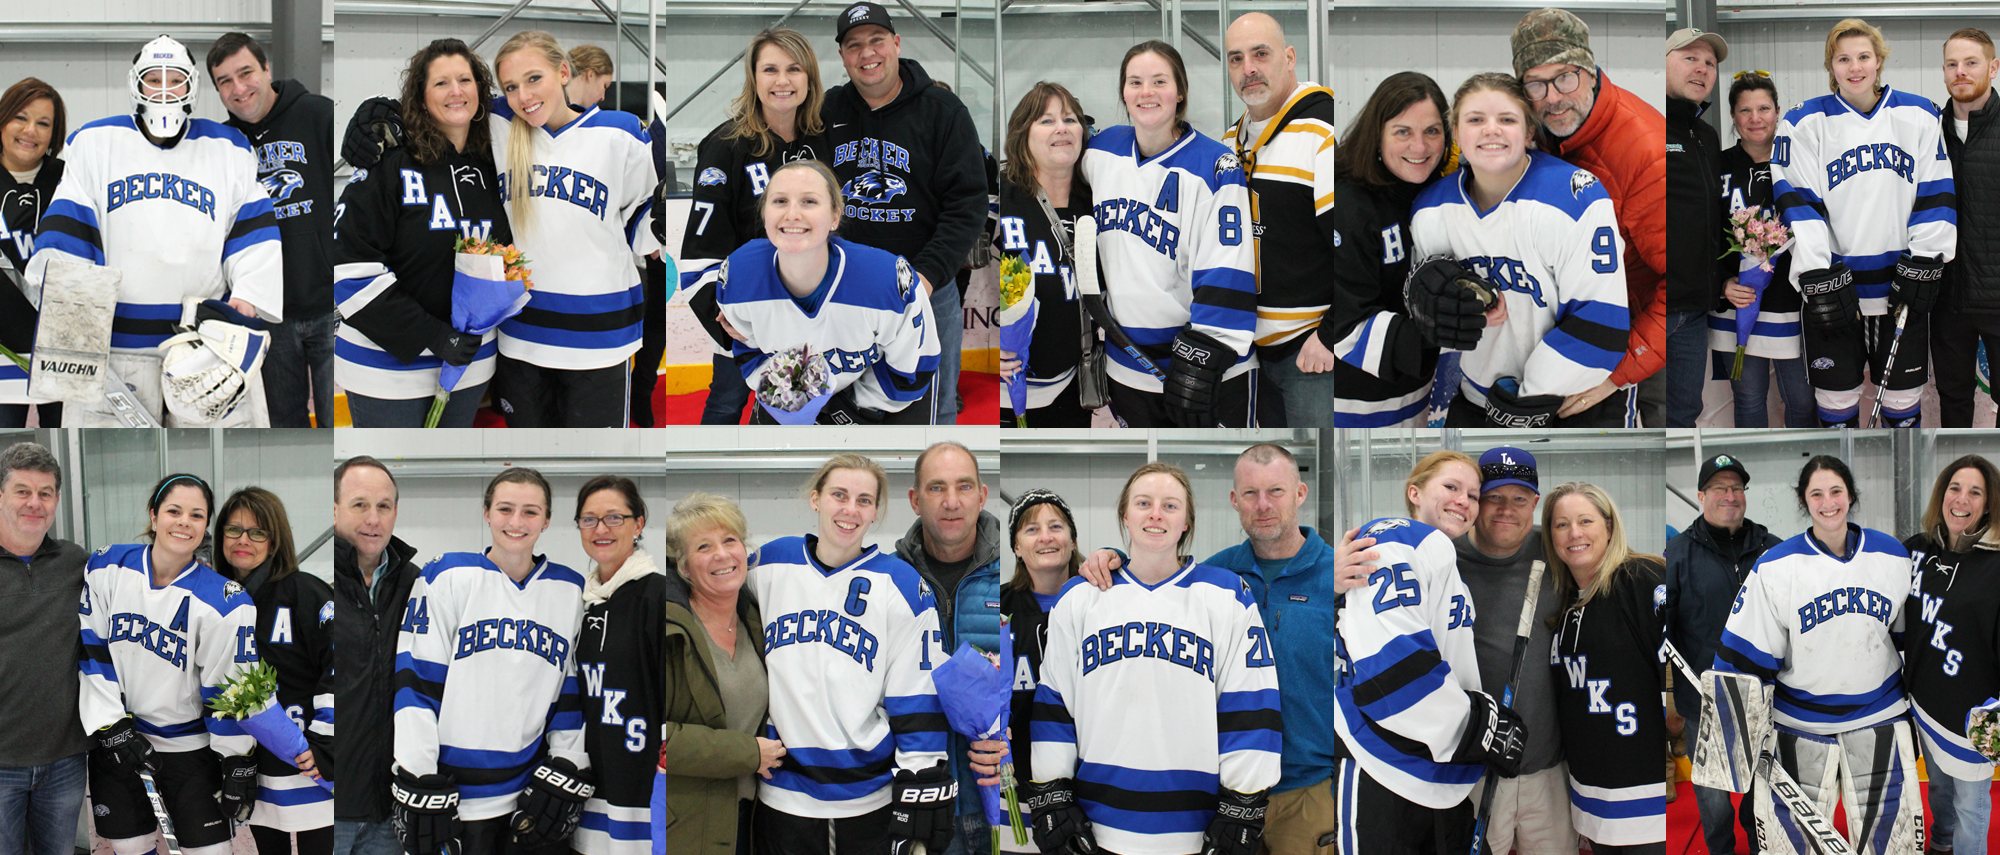 Becker women's ice hockey senior day (Feb. 9, 2019)